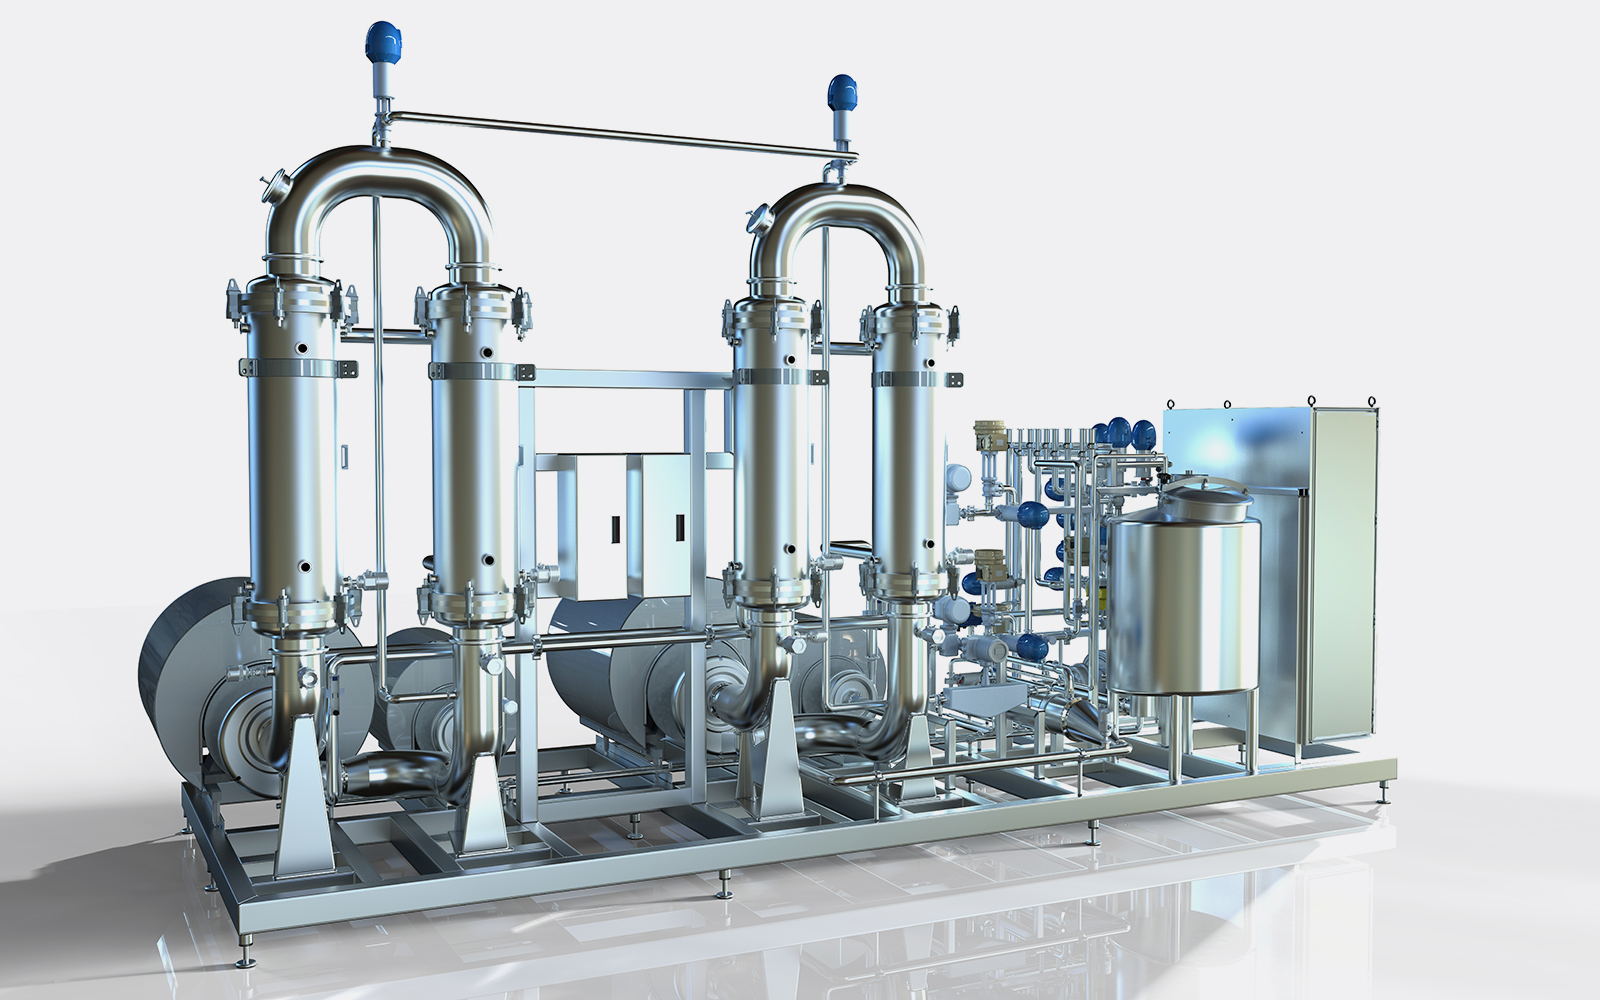 System for filtration of water soluble fish proteins. Two systems UF and NF, with the purpose of making pure fish proteins from hydrolysis of fish. First step is to use ceramic membranes to remove suspended solids and oil. Second step concentrates the proteins up to 30 %.